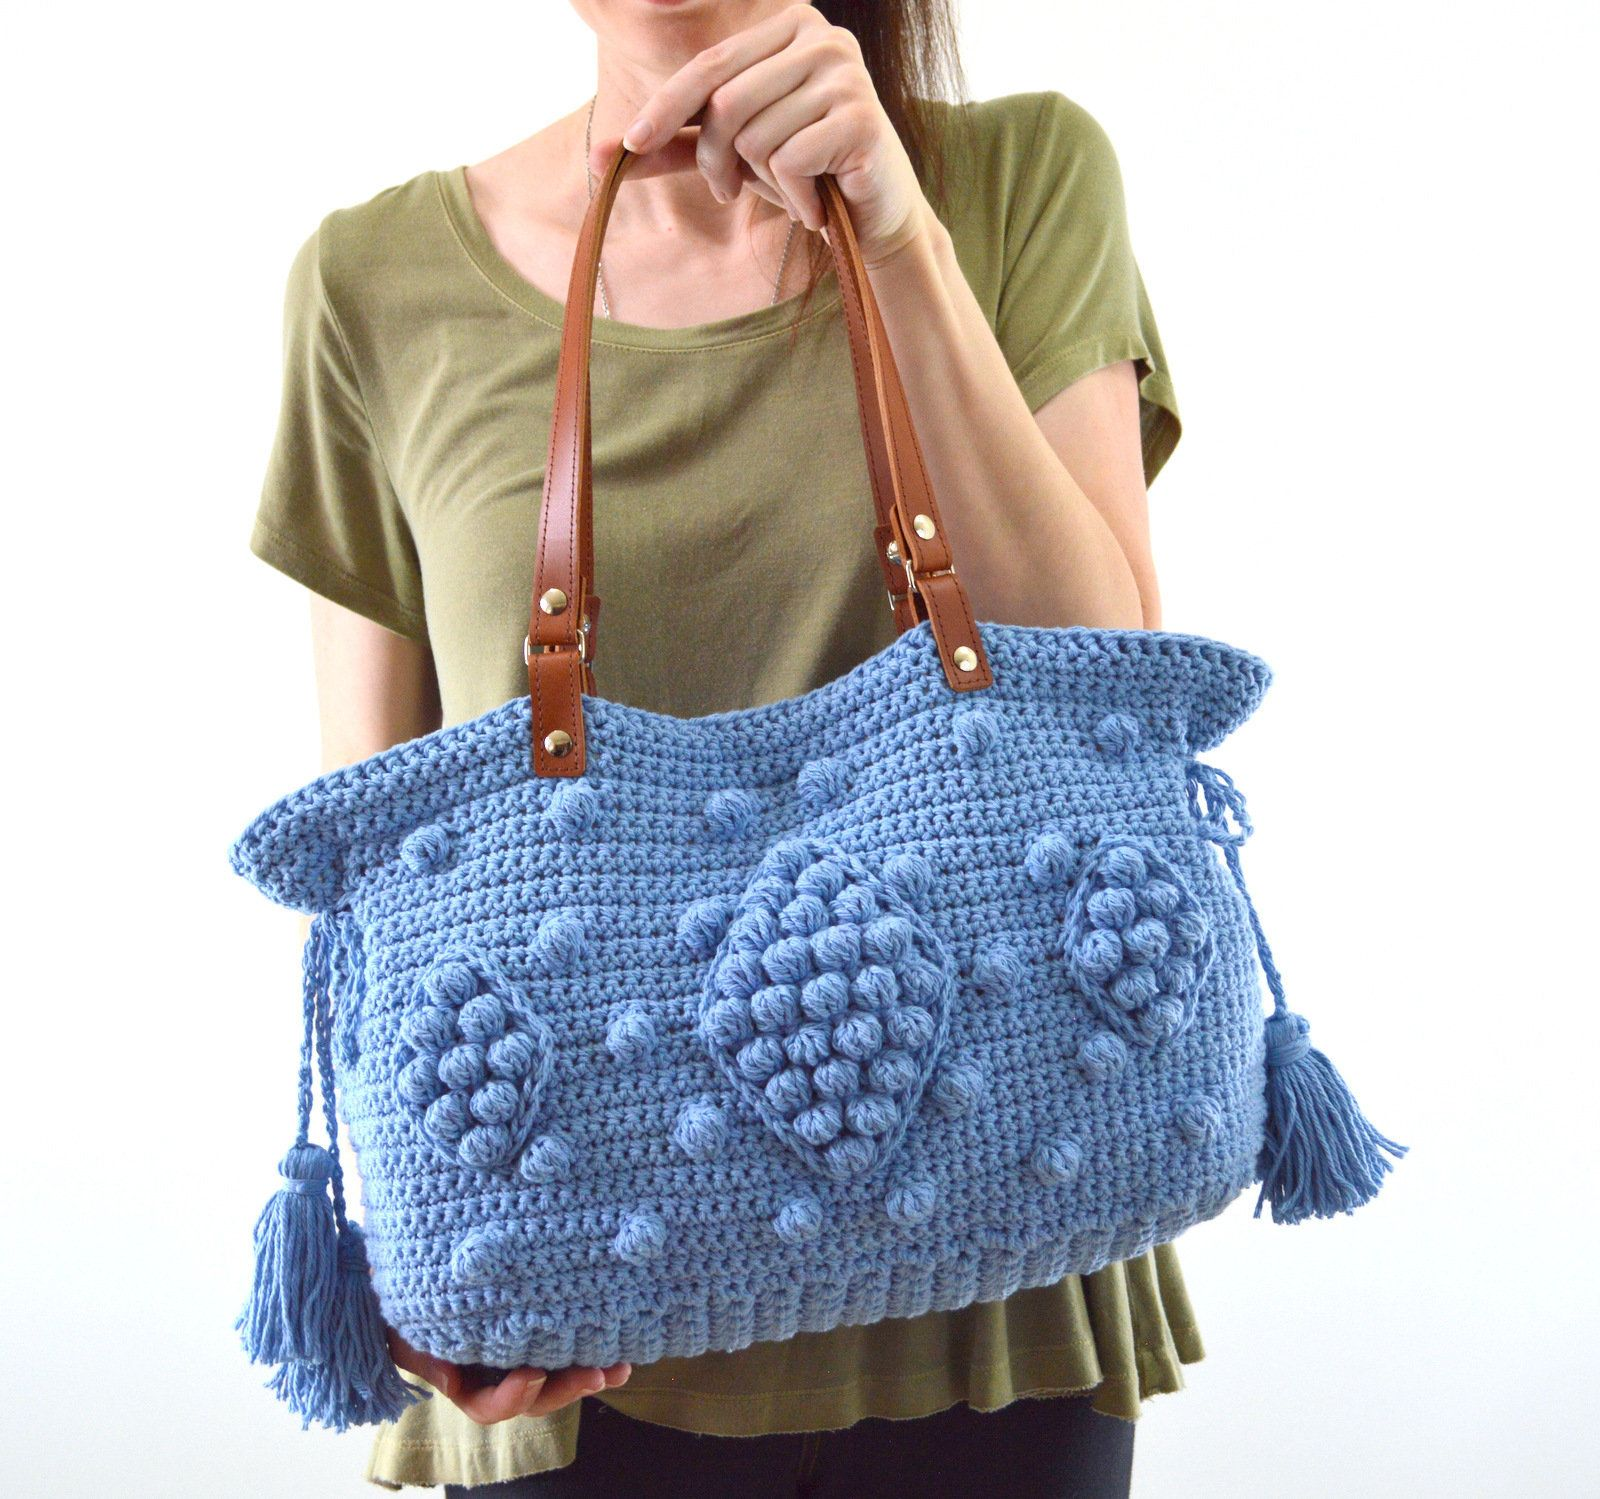 5e199b53e5 Gerard Darel Dublin 24 Hour Inspired Crochet Handbag with Genuine Leather  Handles, Crochet purse,